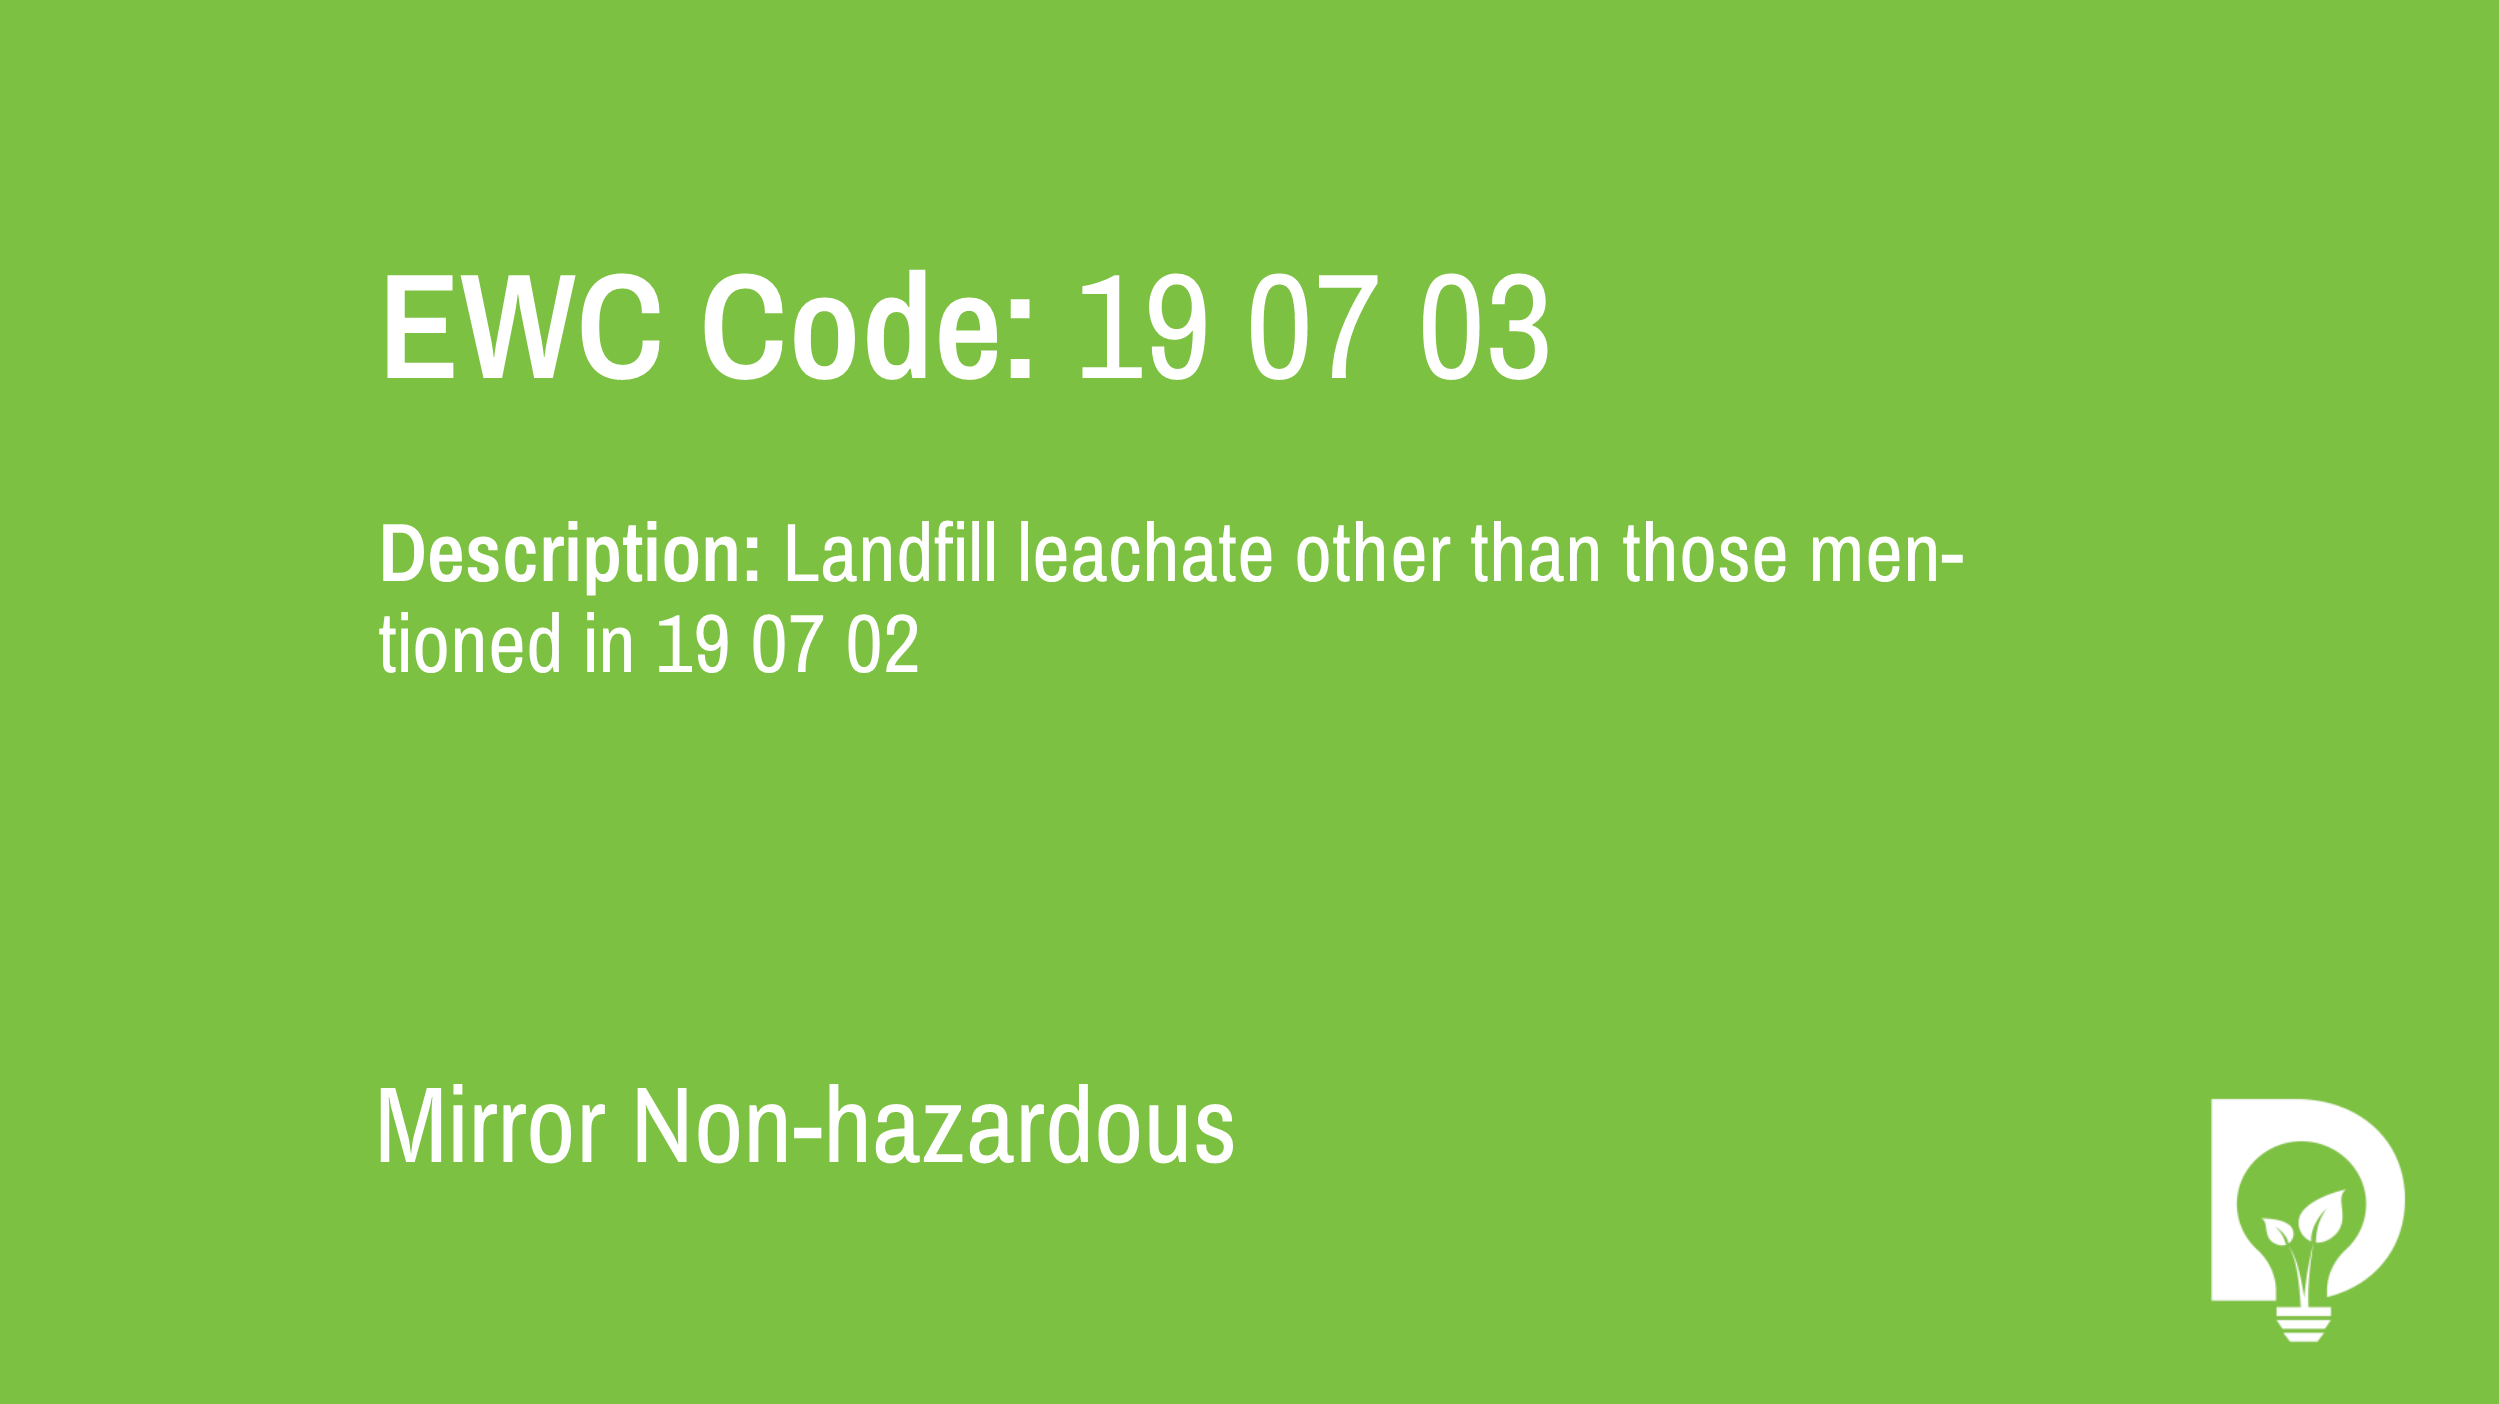 EWC Code: 19 07 03 - landfill leachate other than those mentioned in 19 07 02. Type: Mirror Non-hazardous. Image by Dsposal